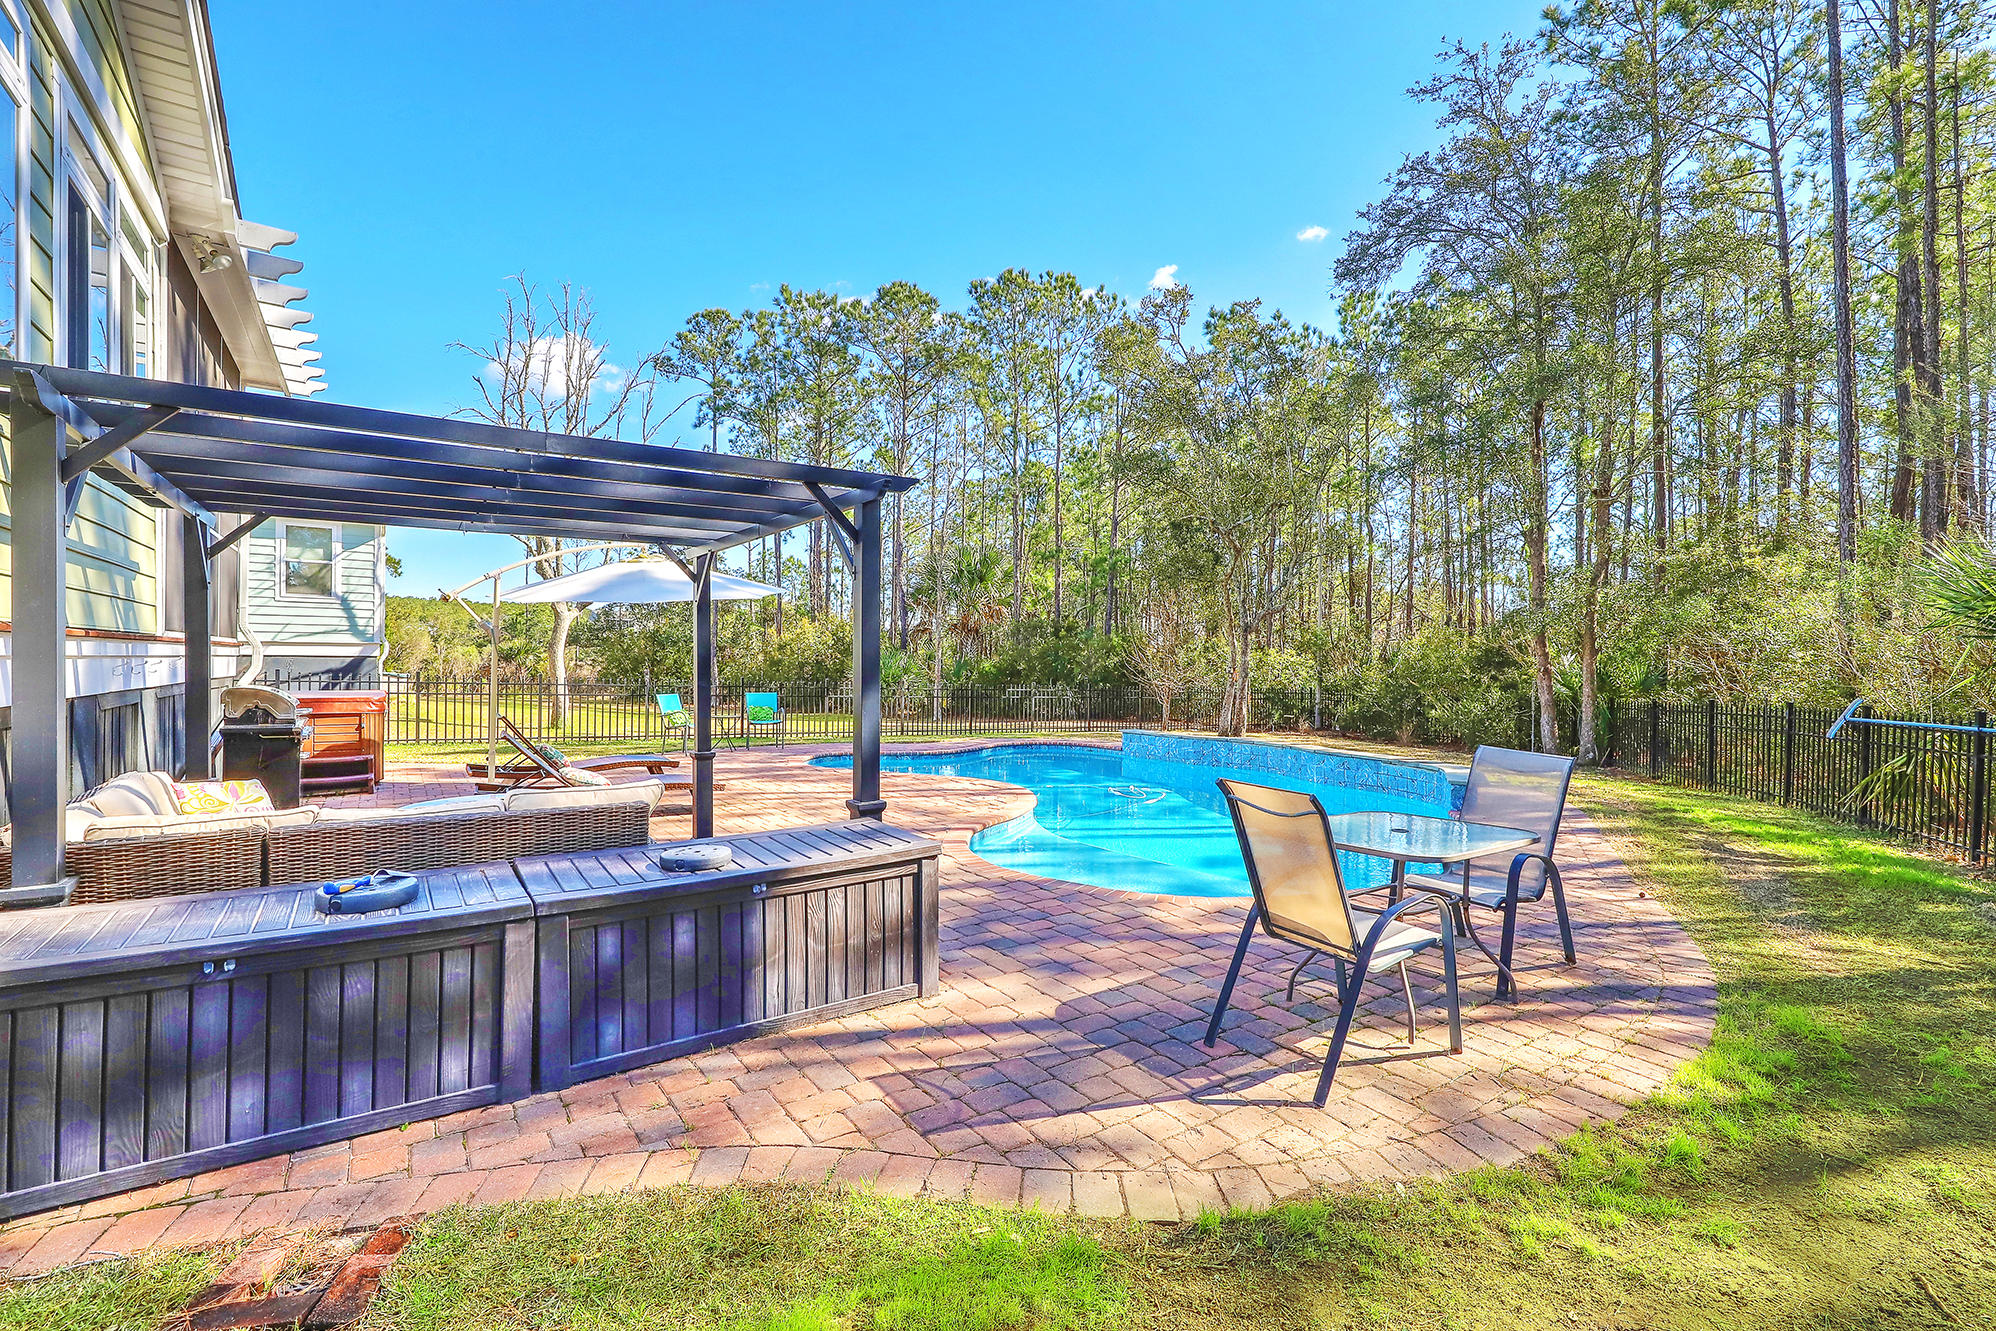 Rivertowne On The Wando Homes For Sale - 2105 Sandy Point, Mount Pleasant, SC - 24